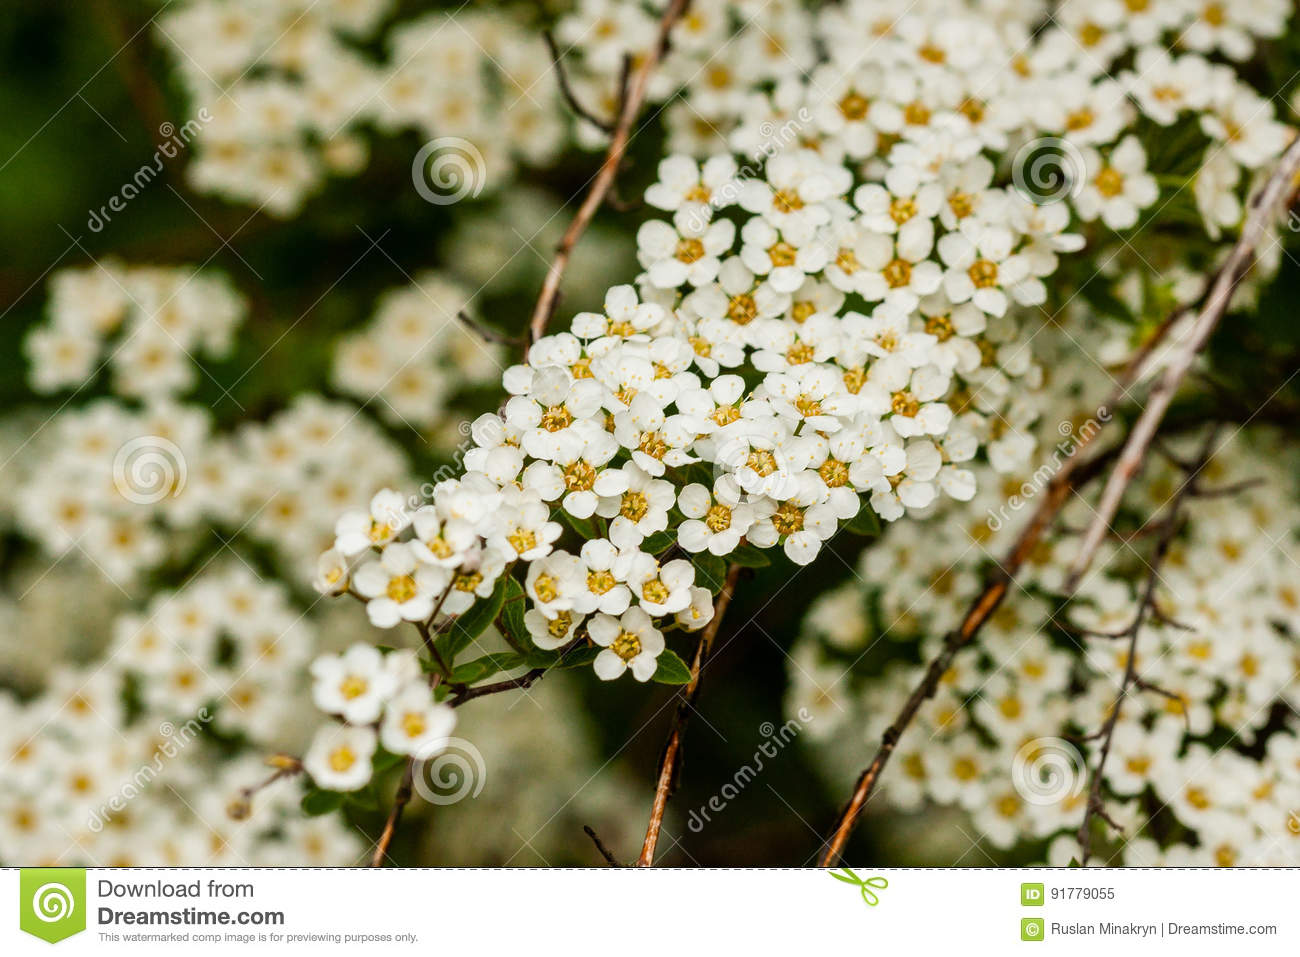 Macro bush of small white flowers on a branch stock image image of macro bush of small white flowers on a branch mightylinksfo